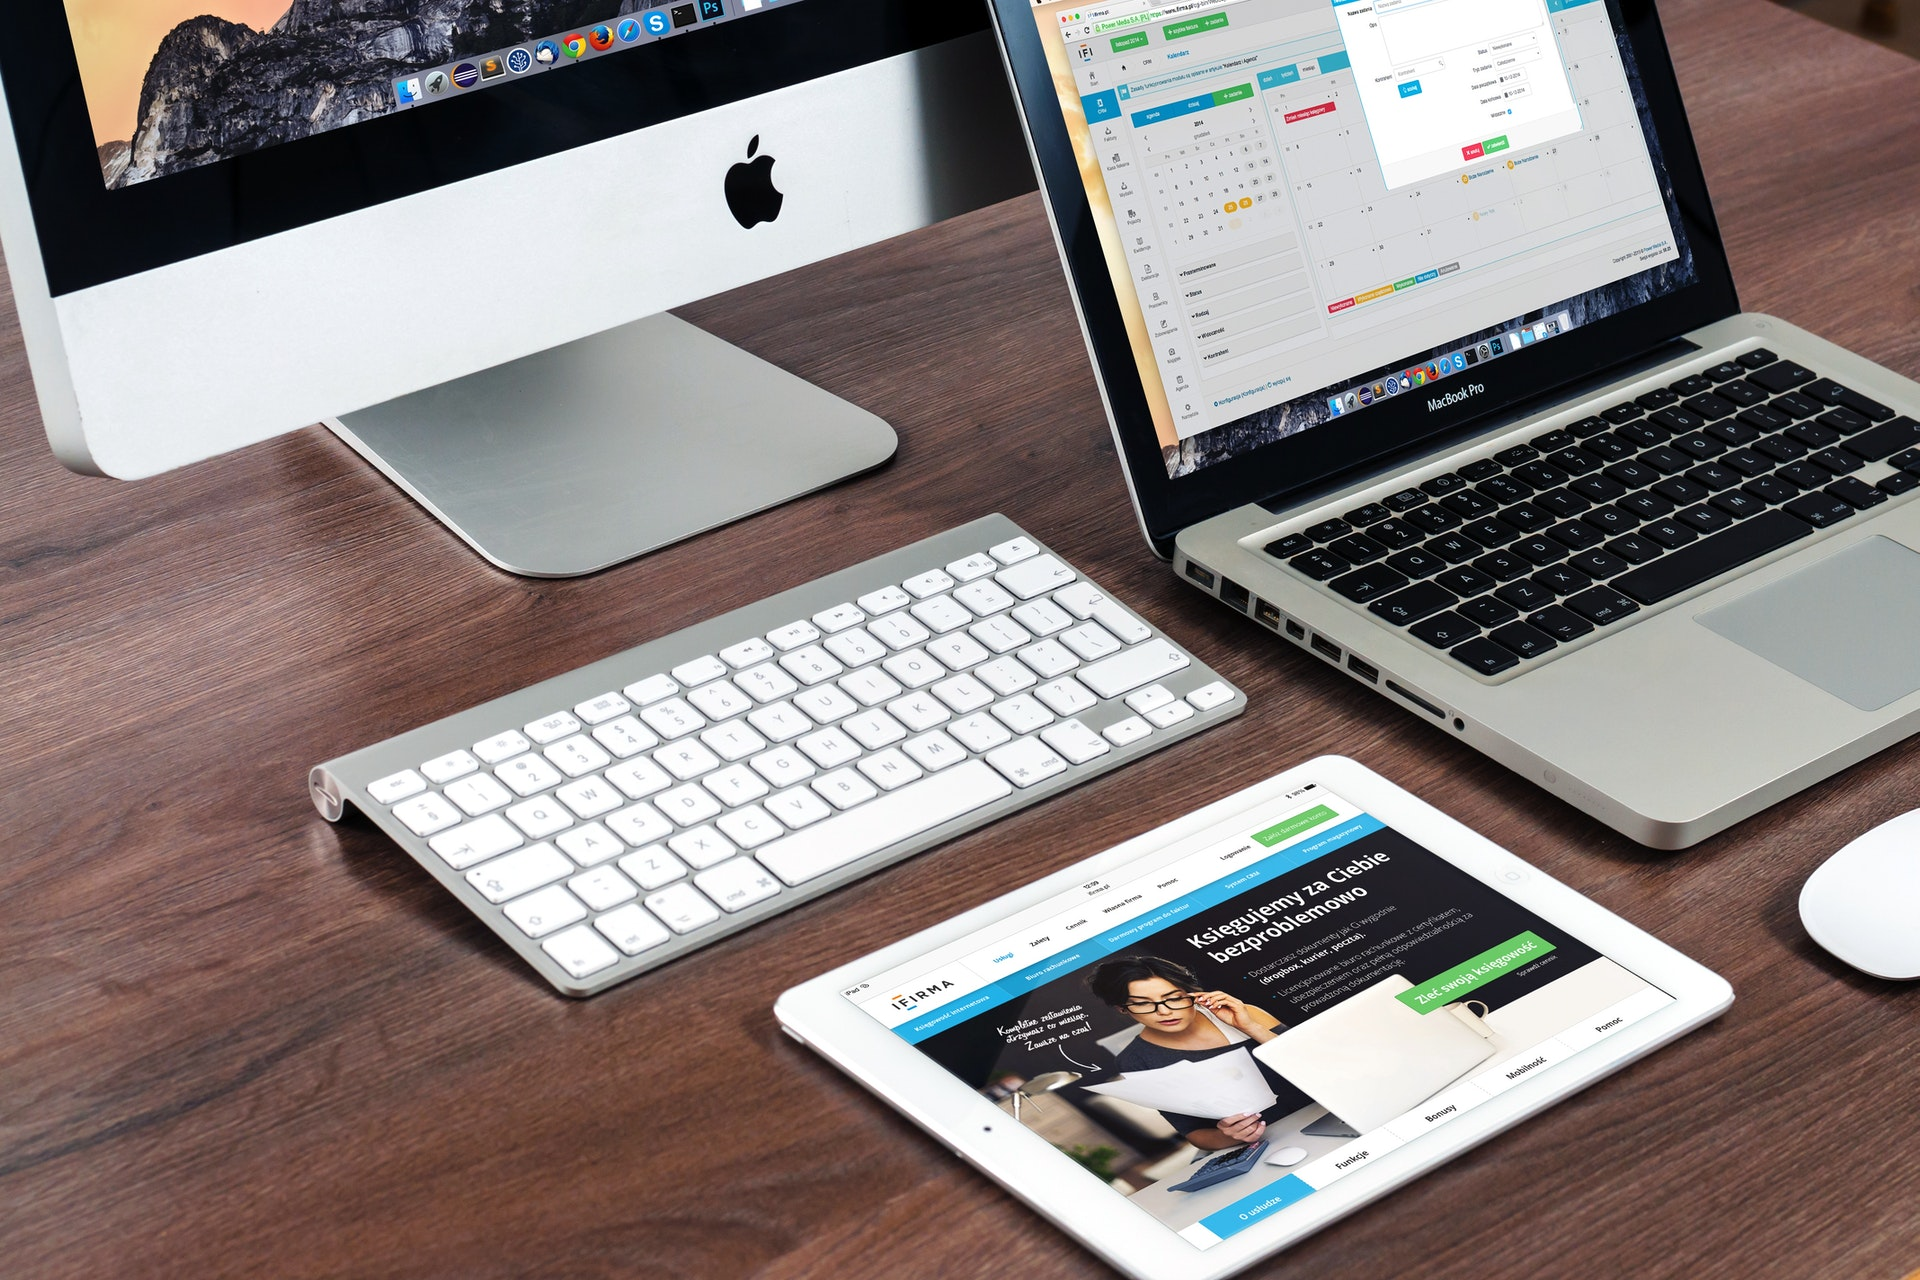 The prominence of websites and applications in the Gen-Z business model